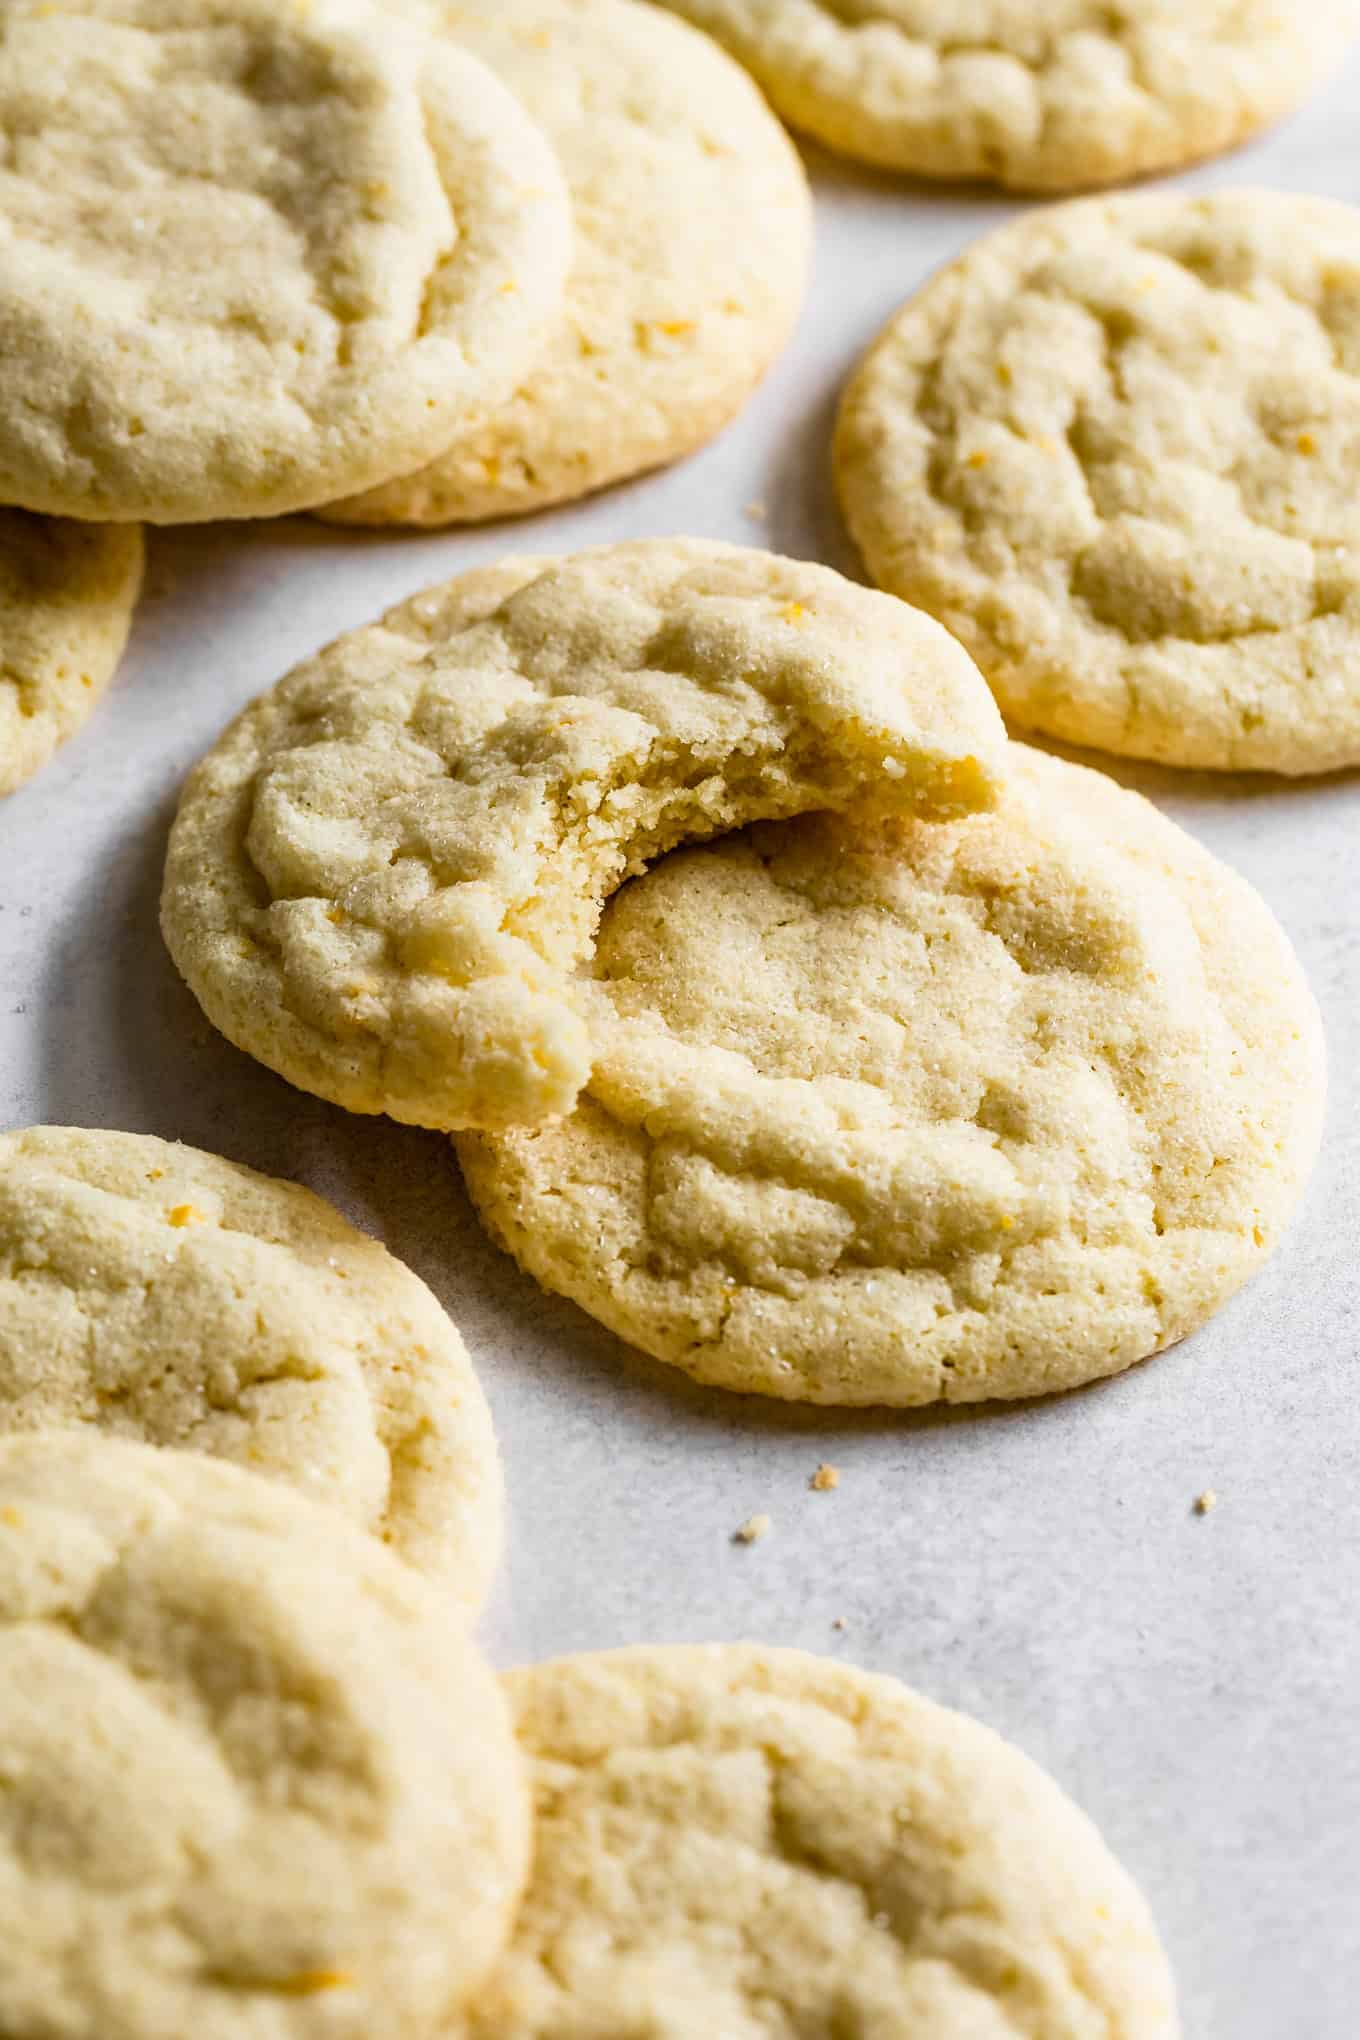 Soft and Chewy Gluten-Free Lemon Cookies